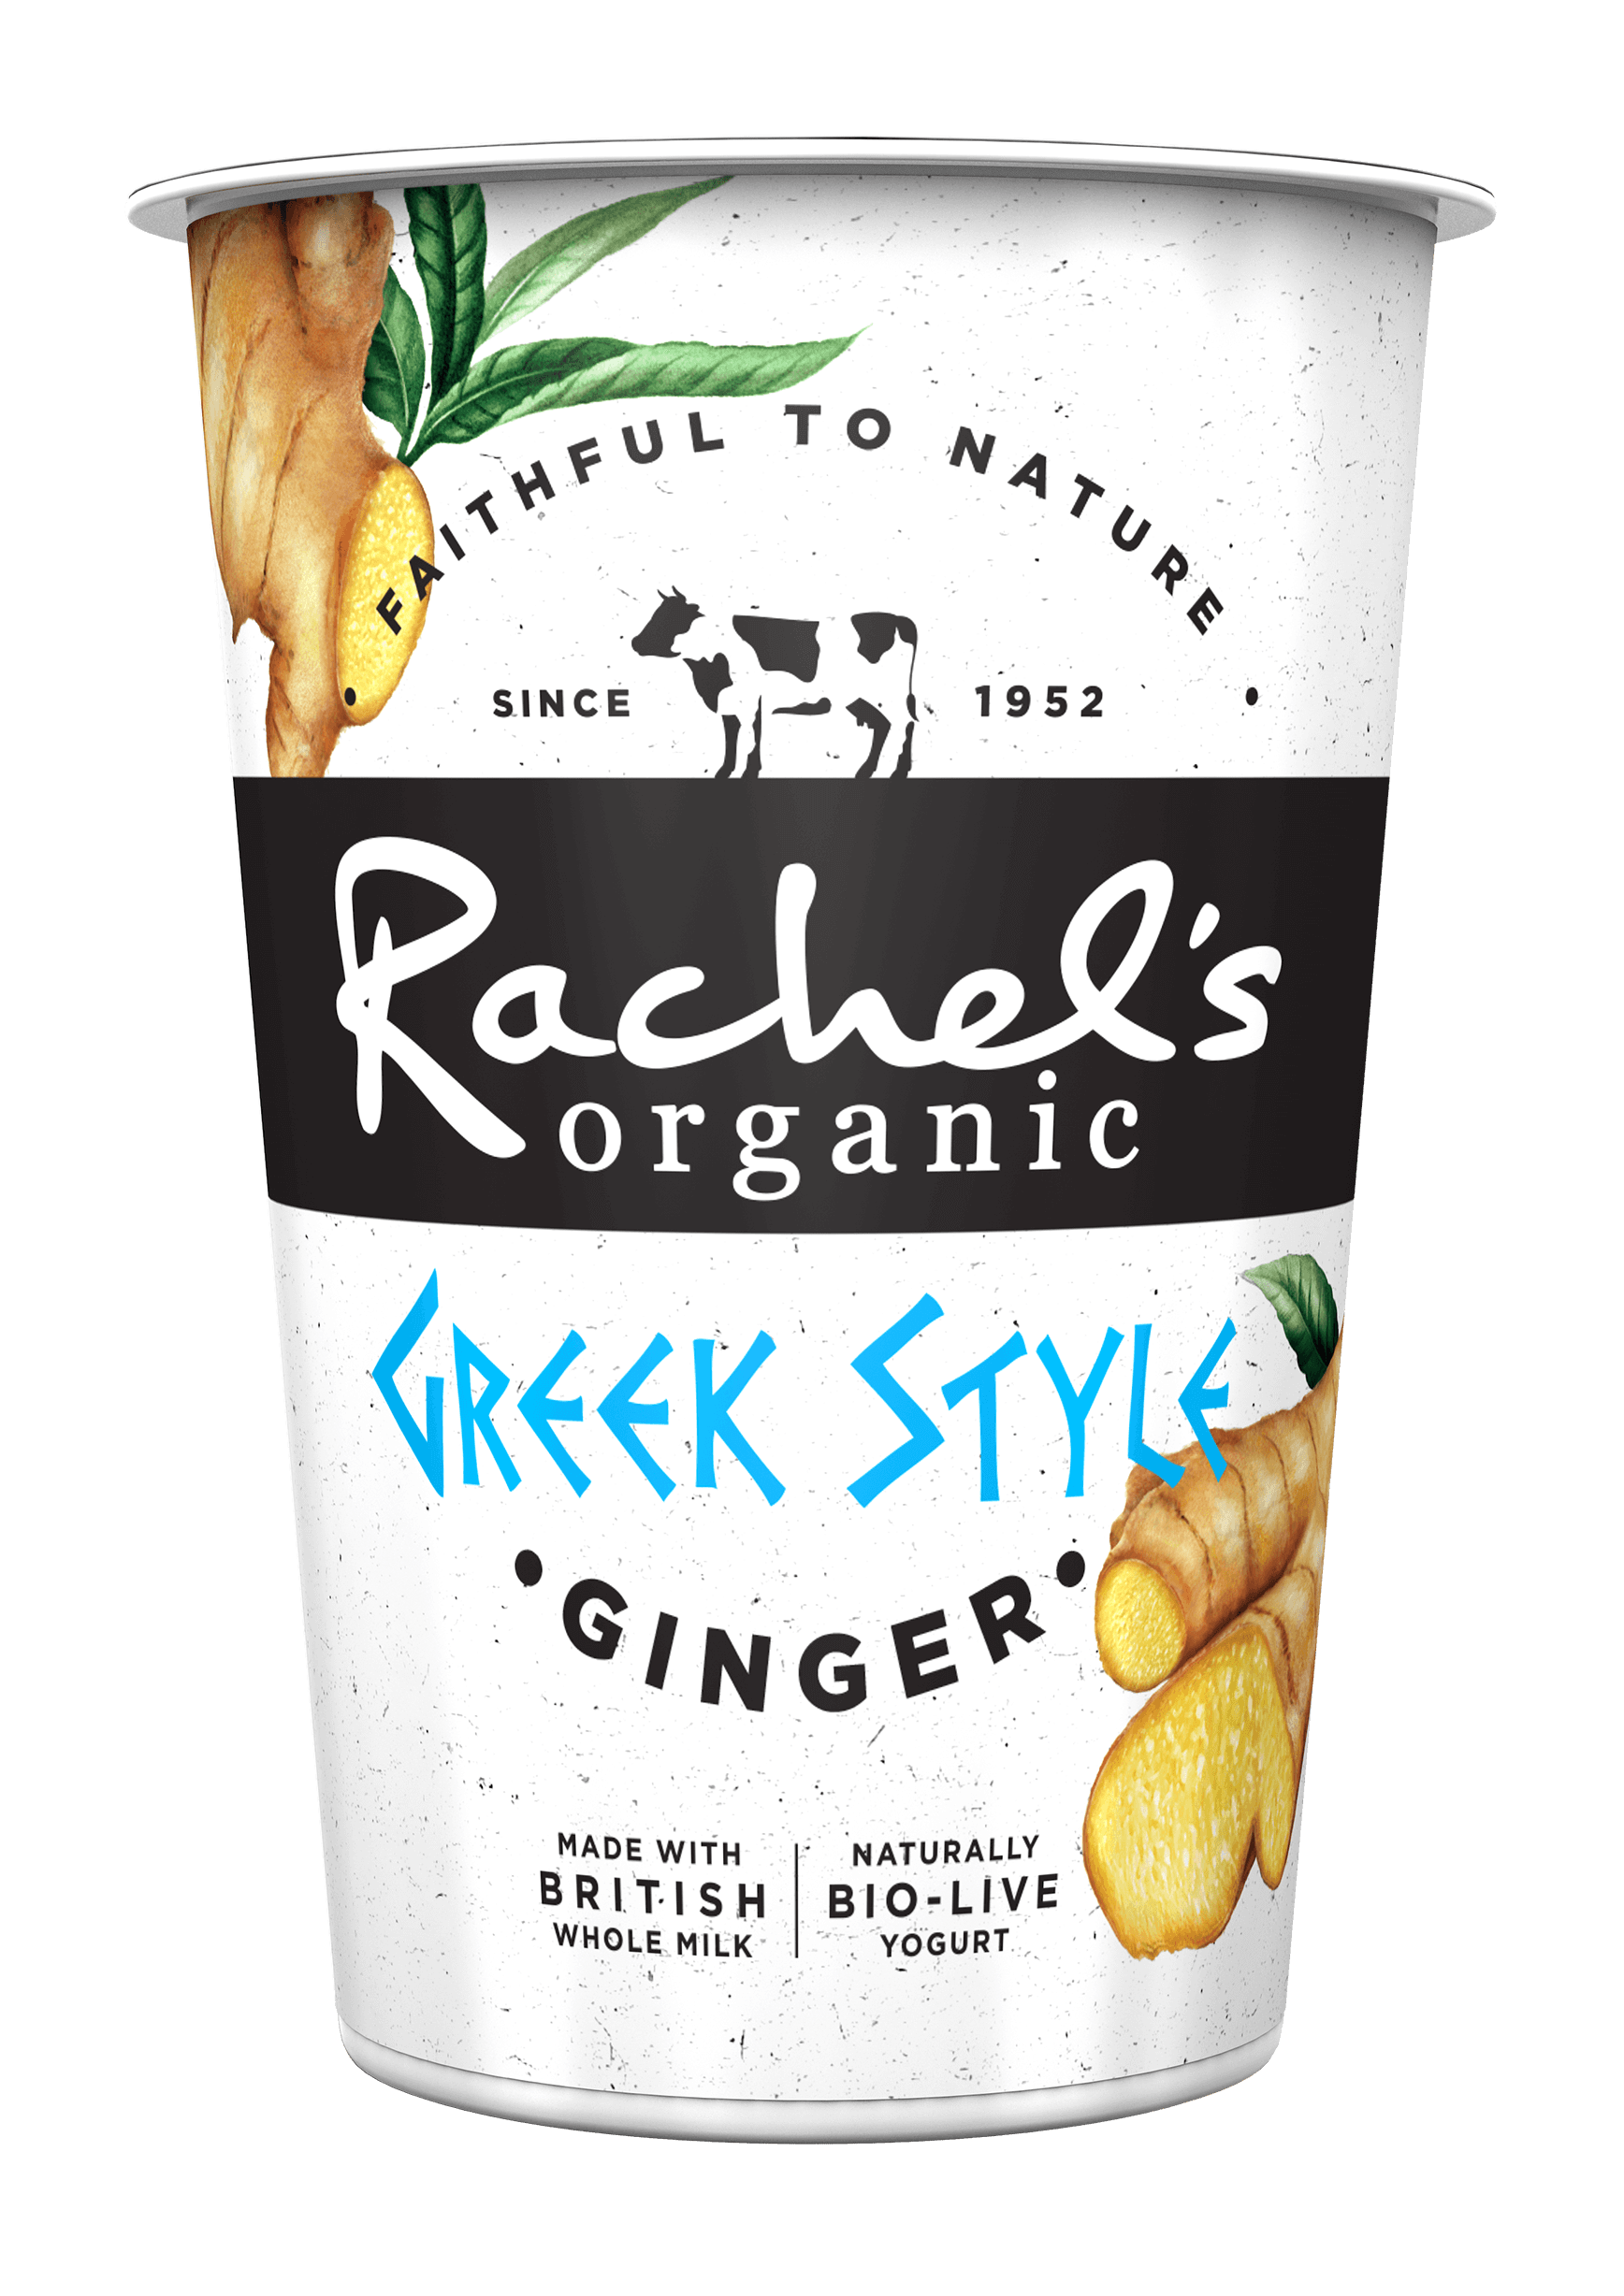 https://www.rachelsorganic.co.uk/wp-content/uploads/2019/06/5021638199657-3D-RACHELS-450G-POT-GREEK-STYLE-GINGER.png